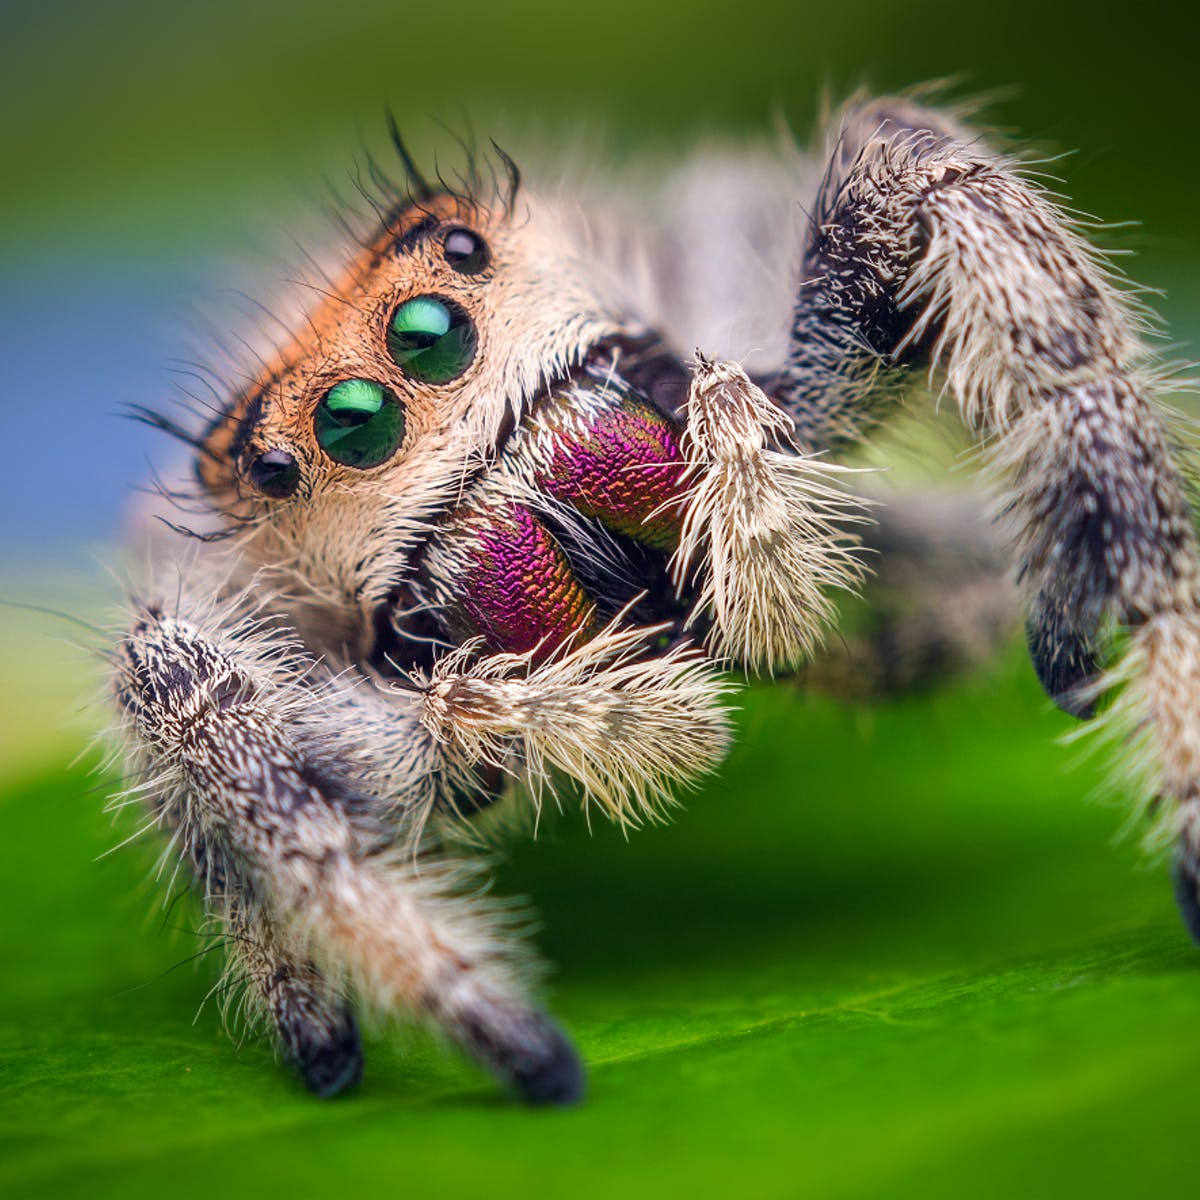 Spider Trained To Jump On Command Reveals Insights On Hydraulic